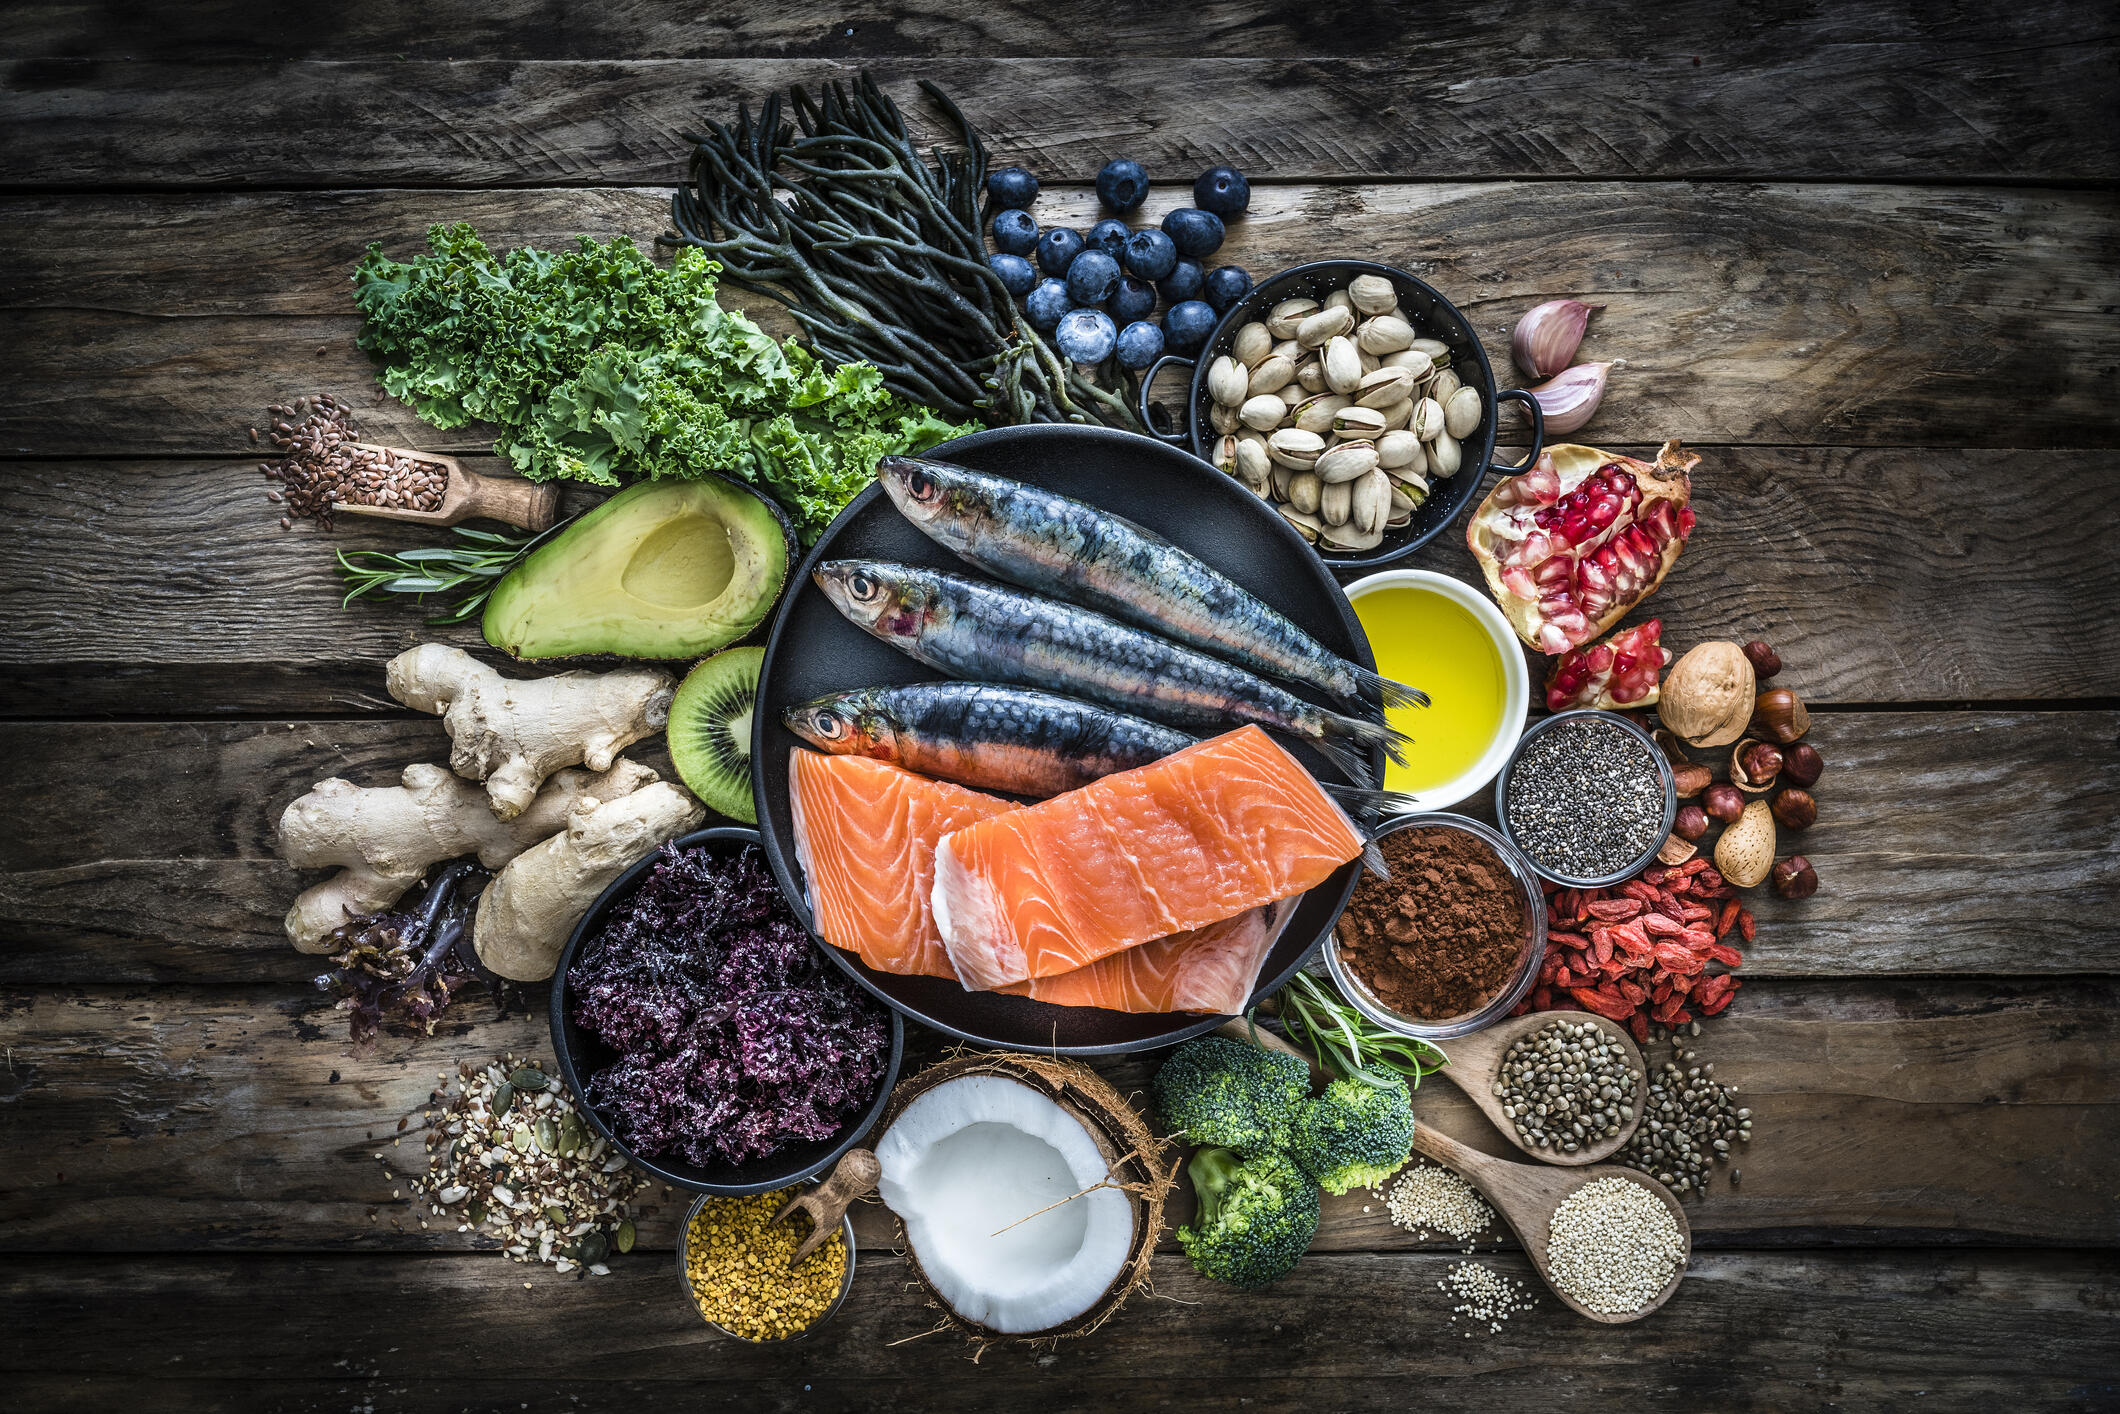 5 foods high in antioxidants (and why you should eat them) - CNET